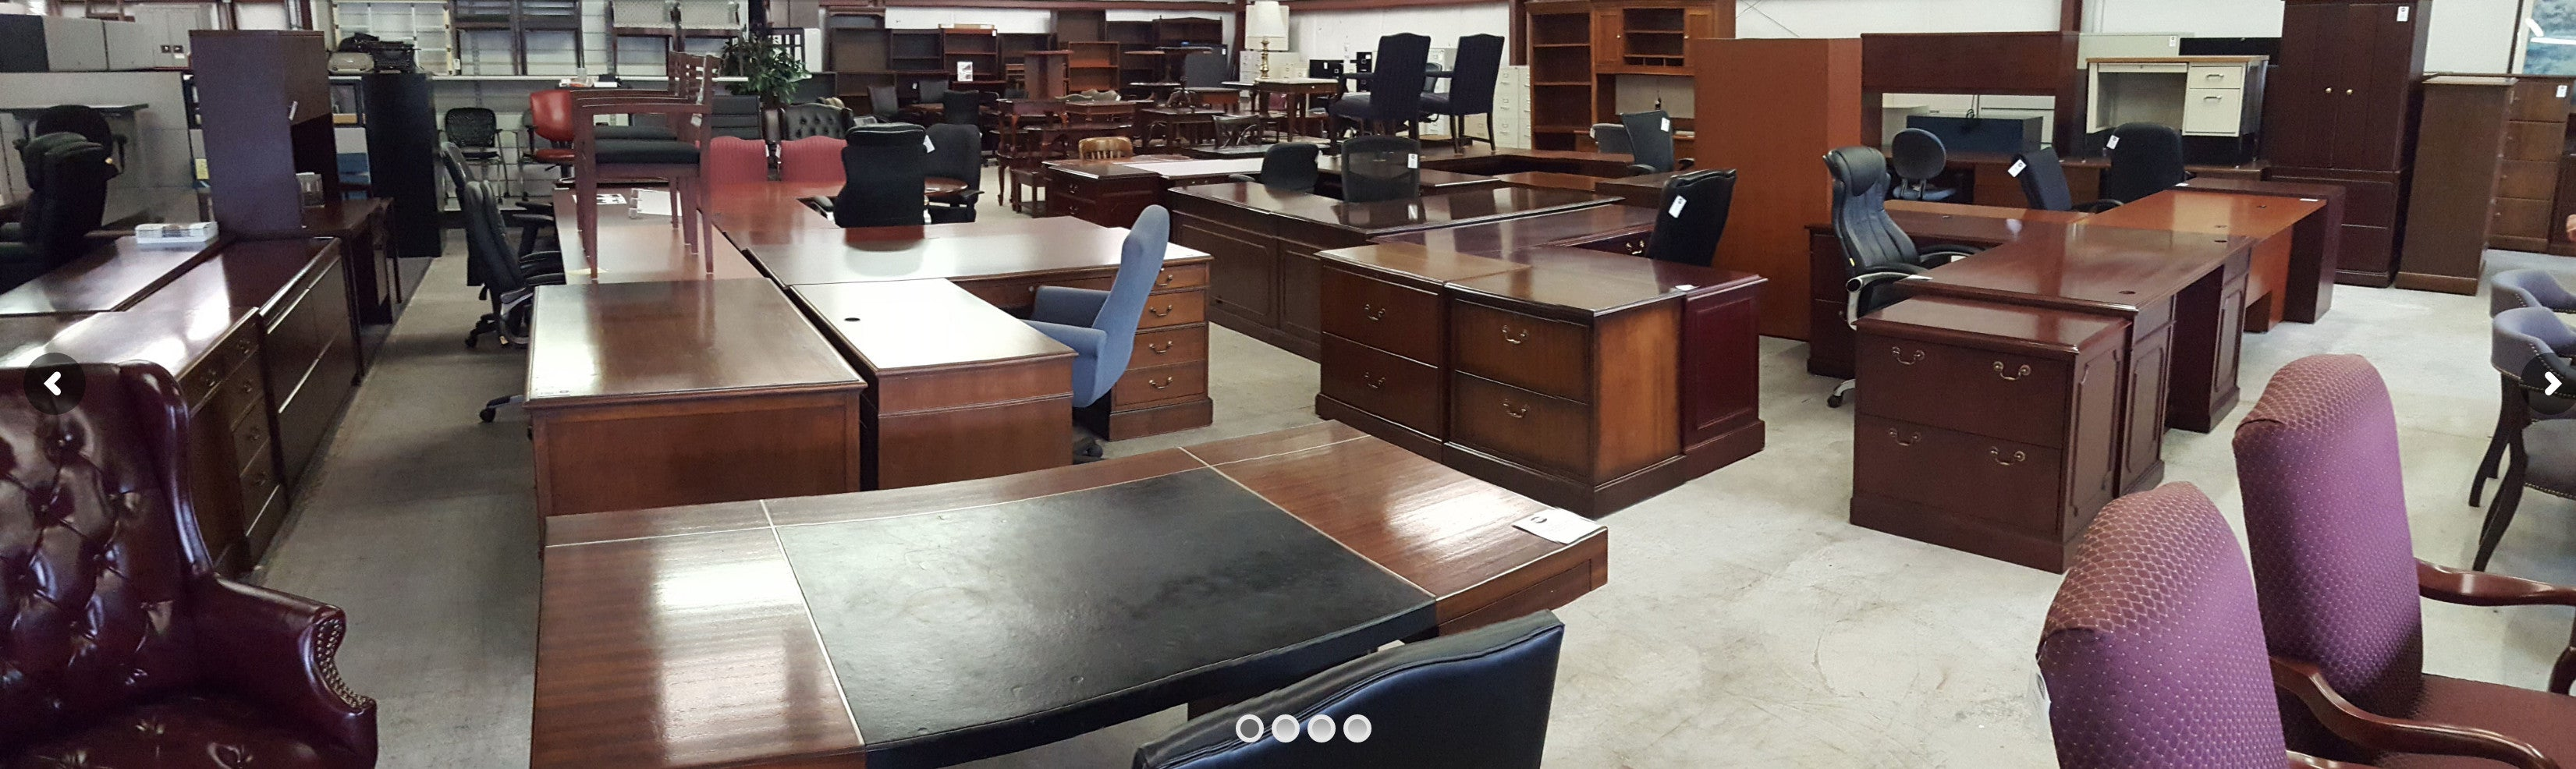 wilcox office mart | new and used office furniture florence sc |